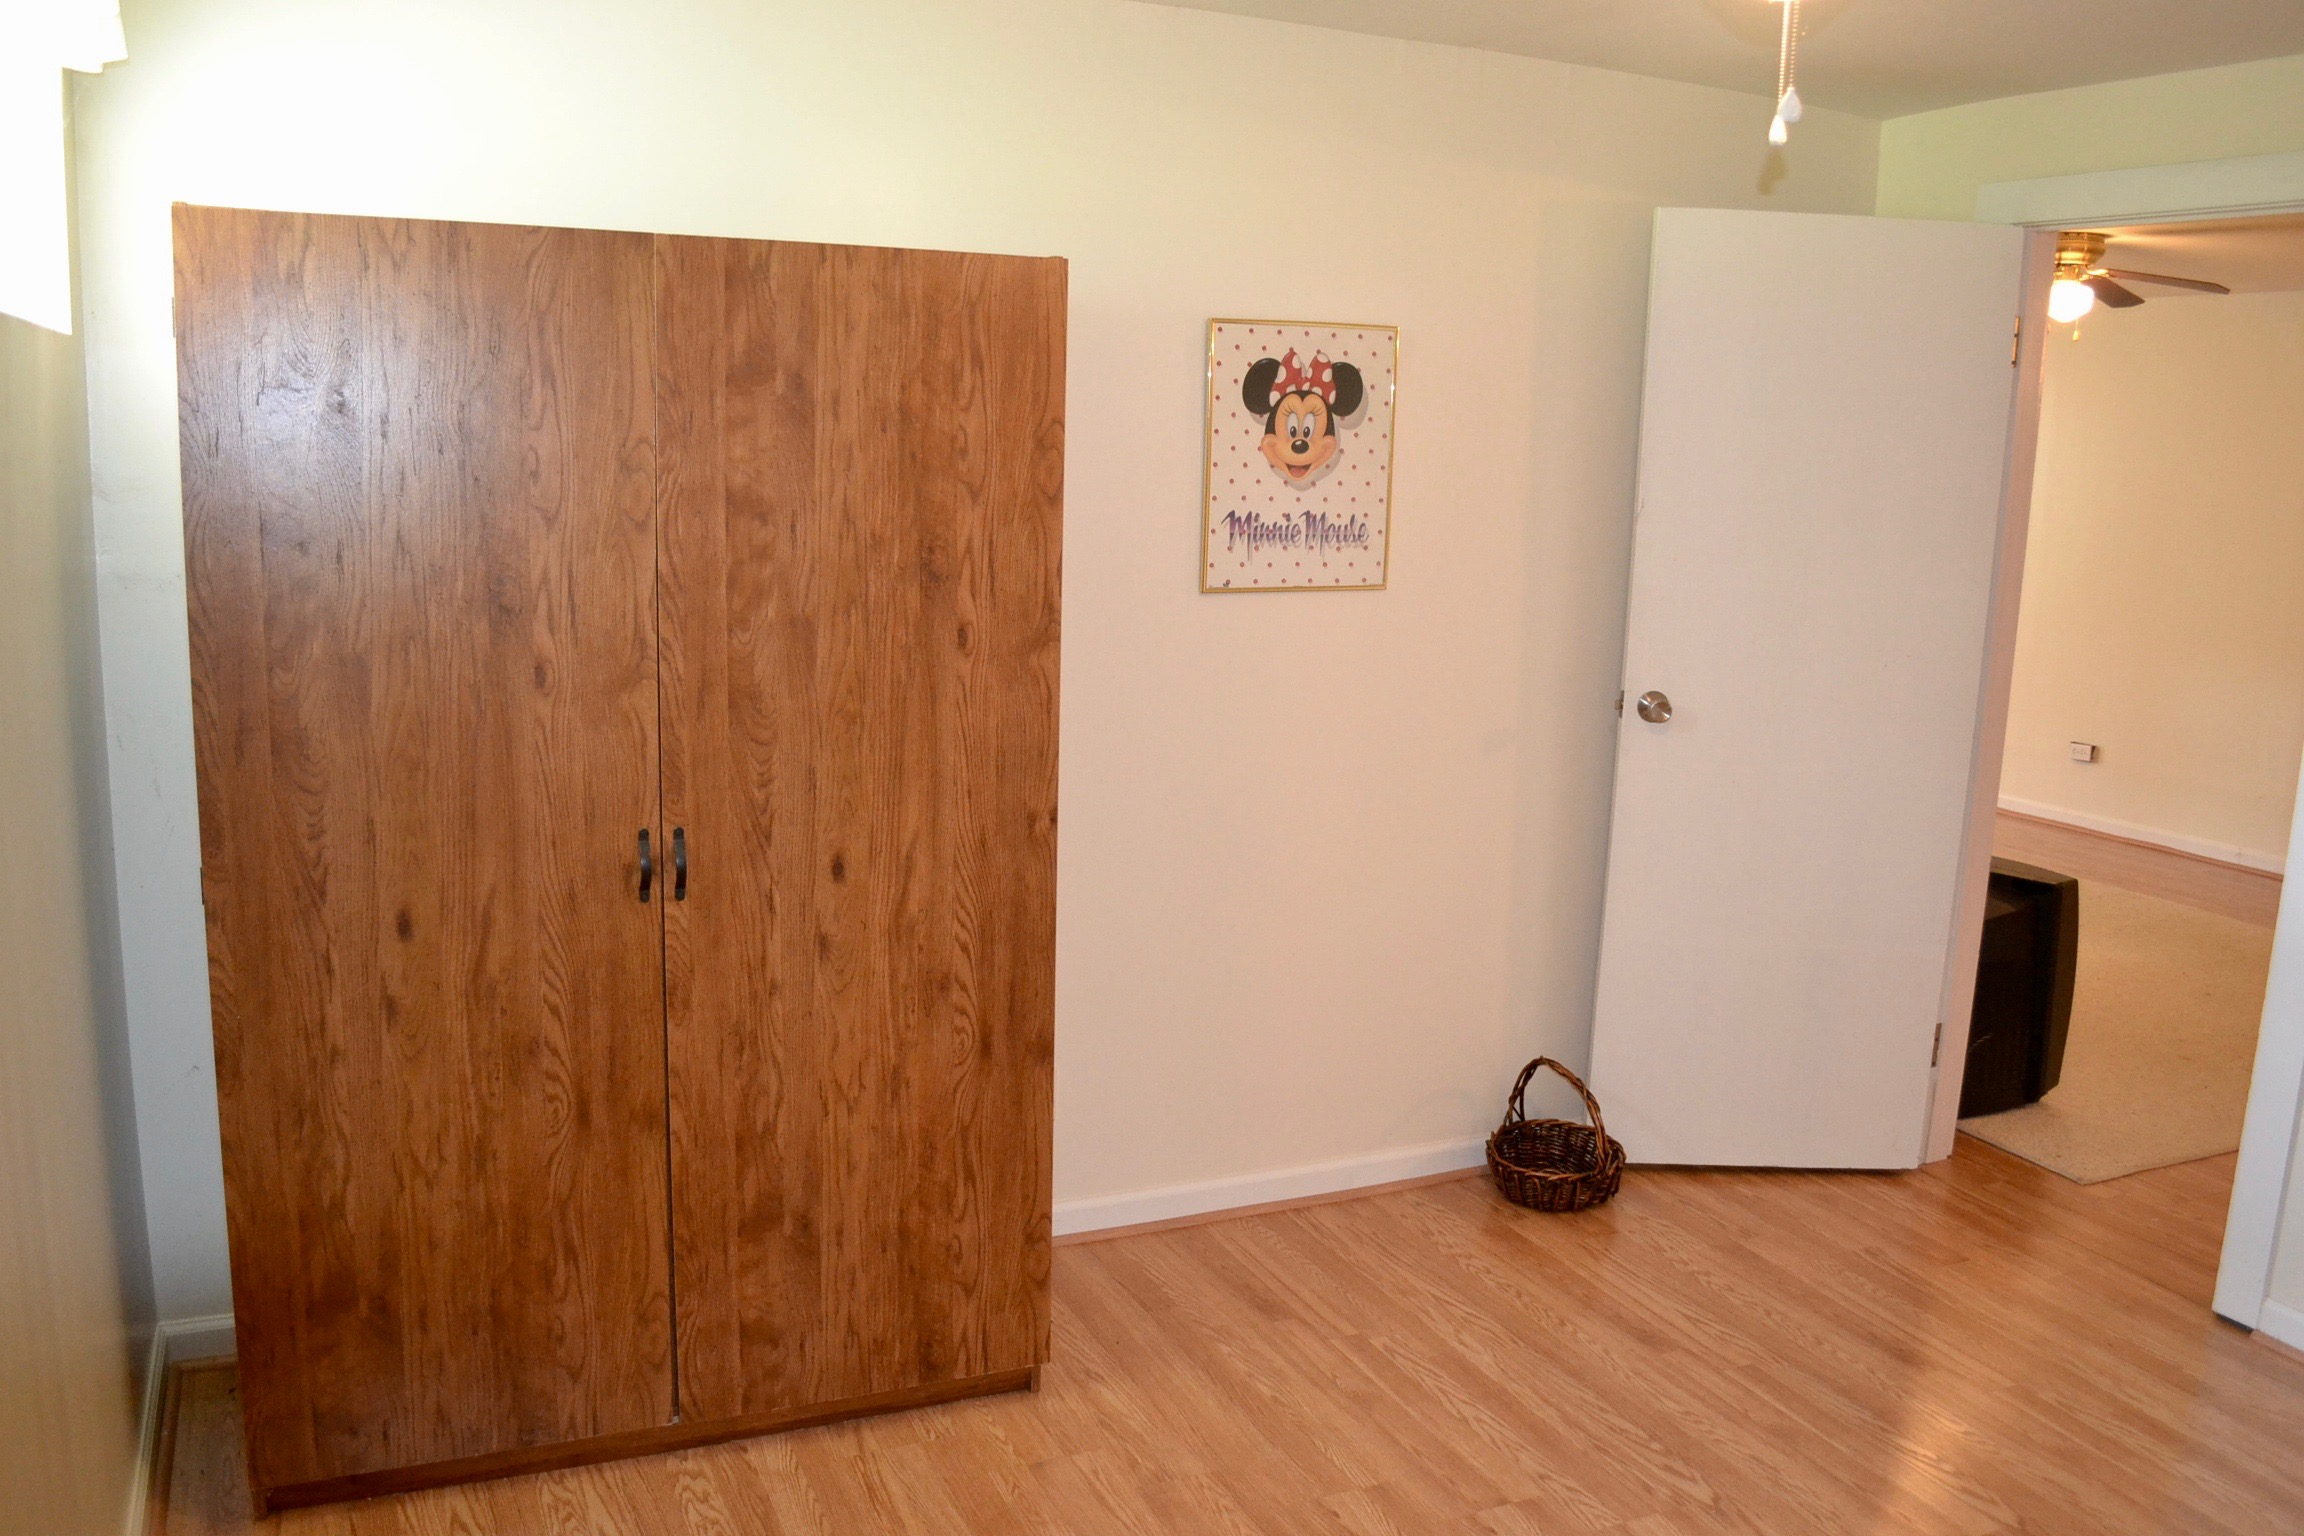 Basement-Finished Room 2-2.jpg